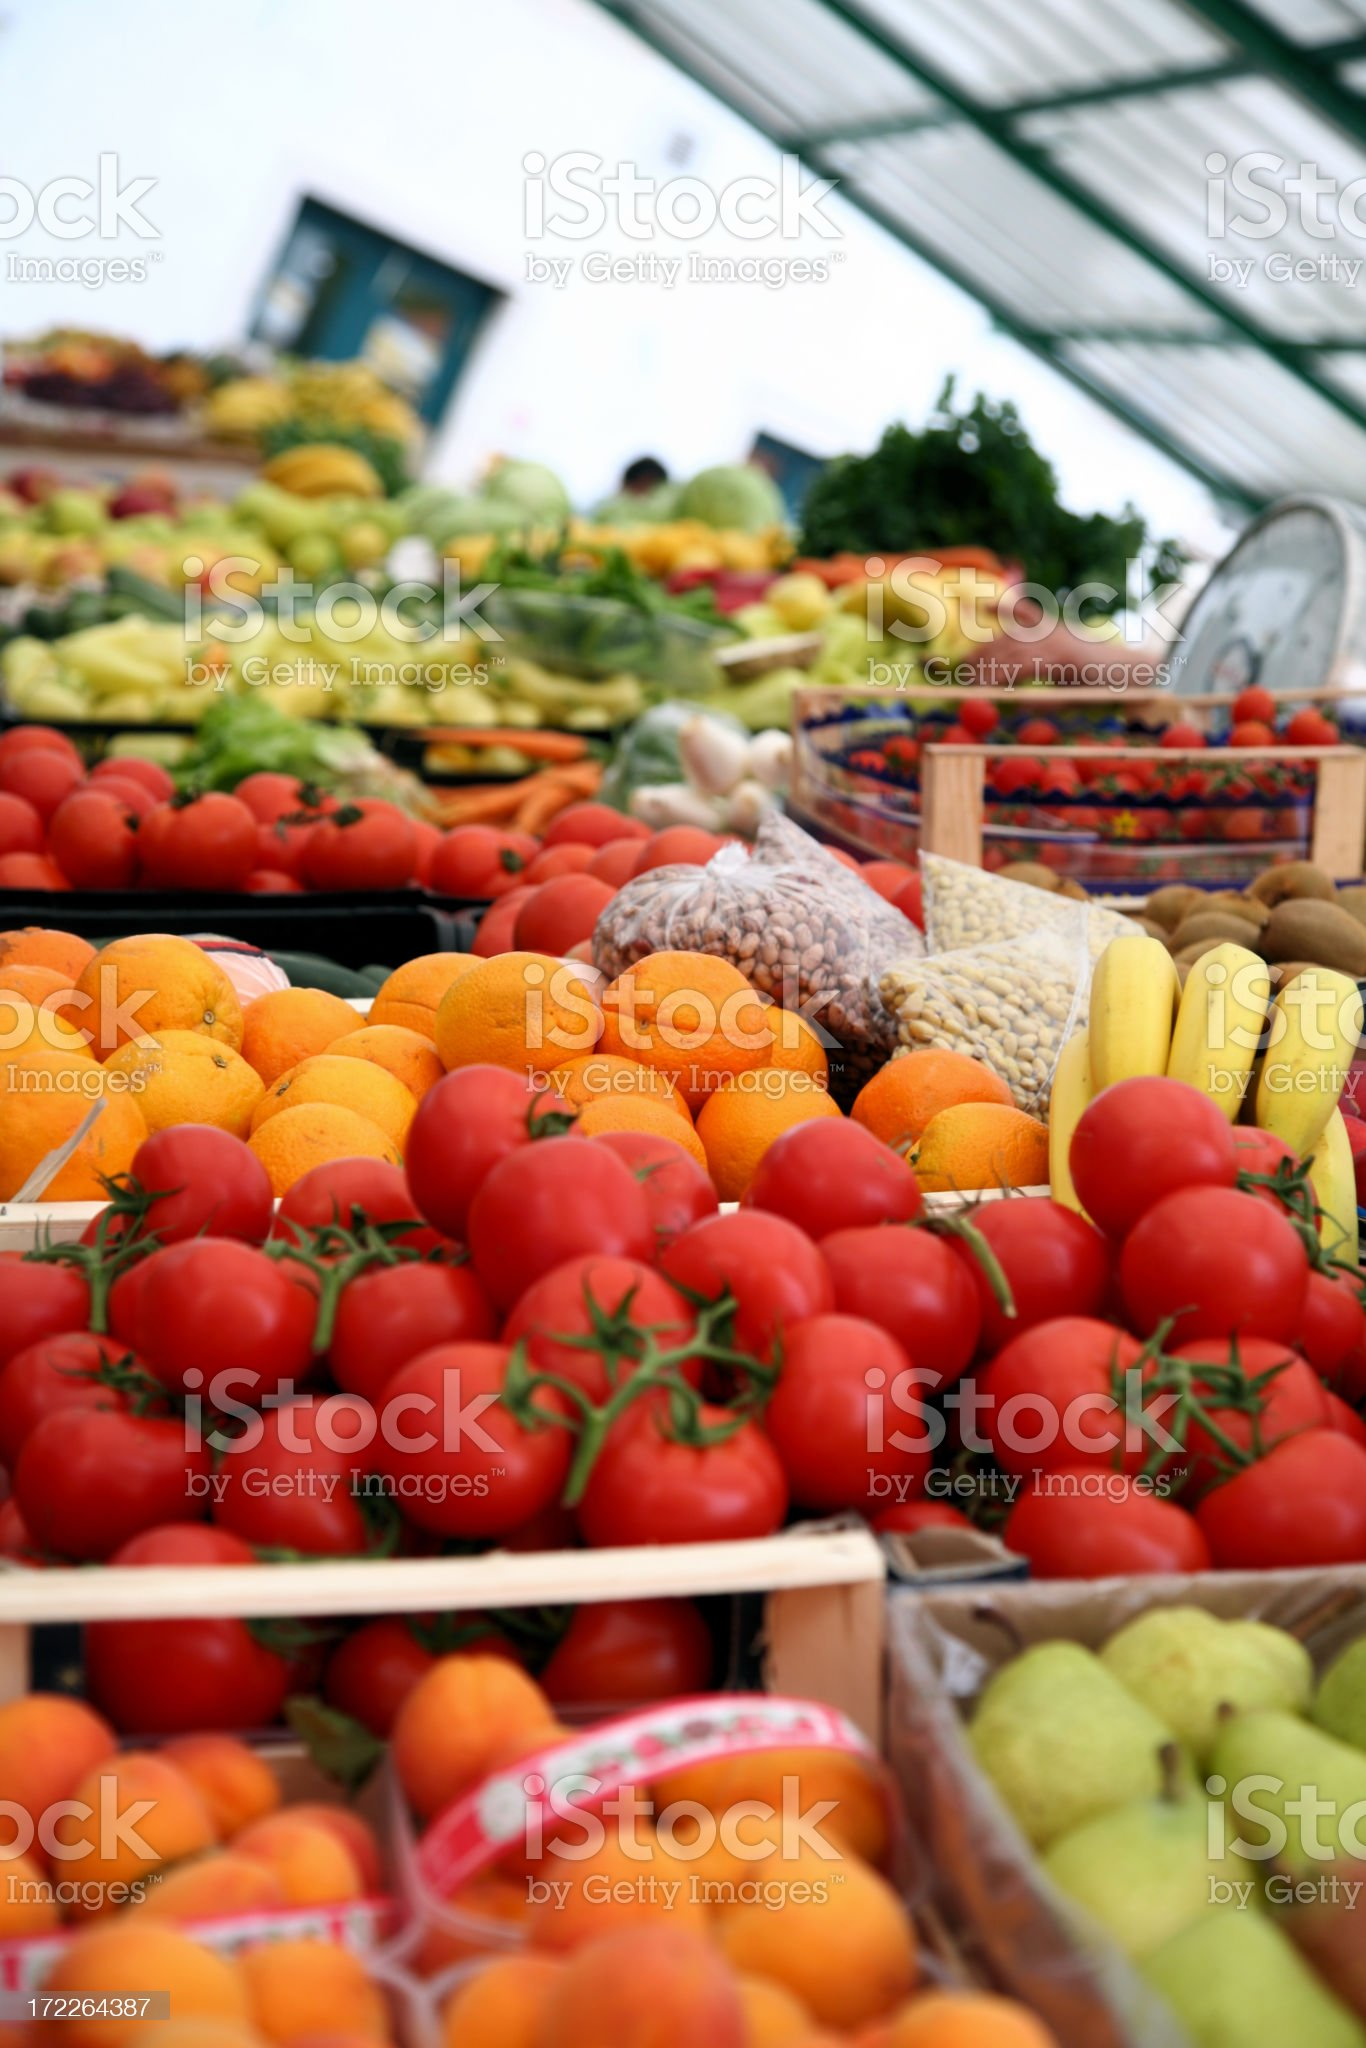 Vegetables and fruits stall royalty-free stock photo